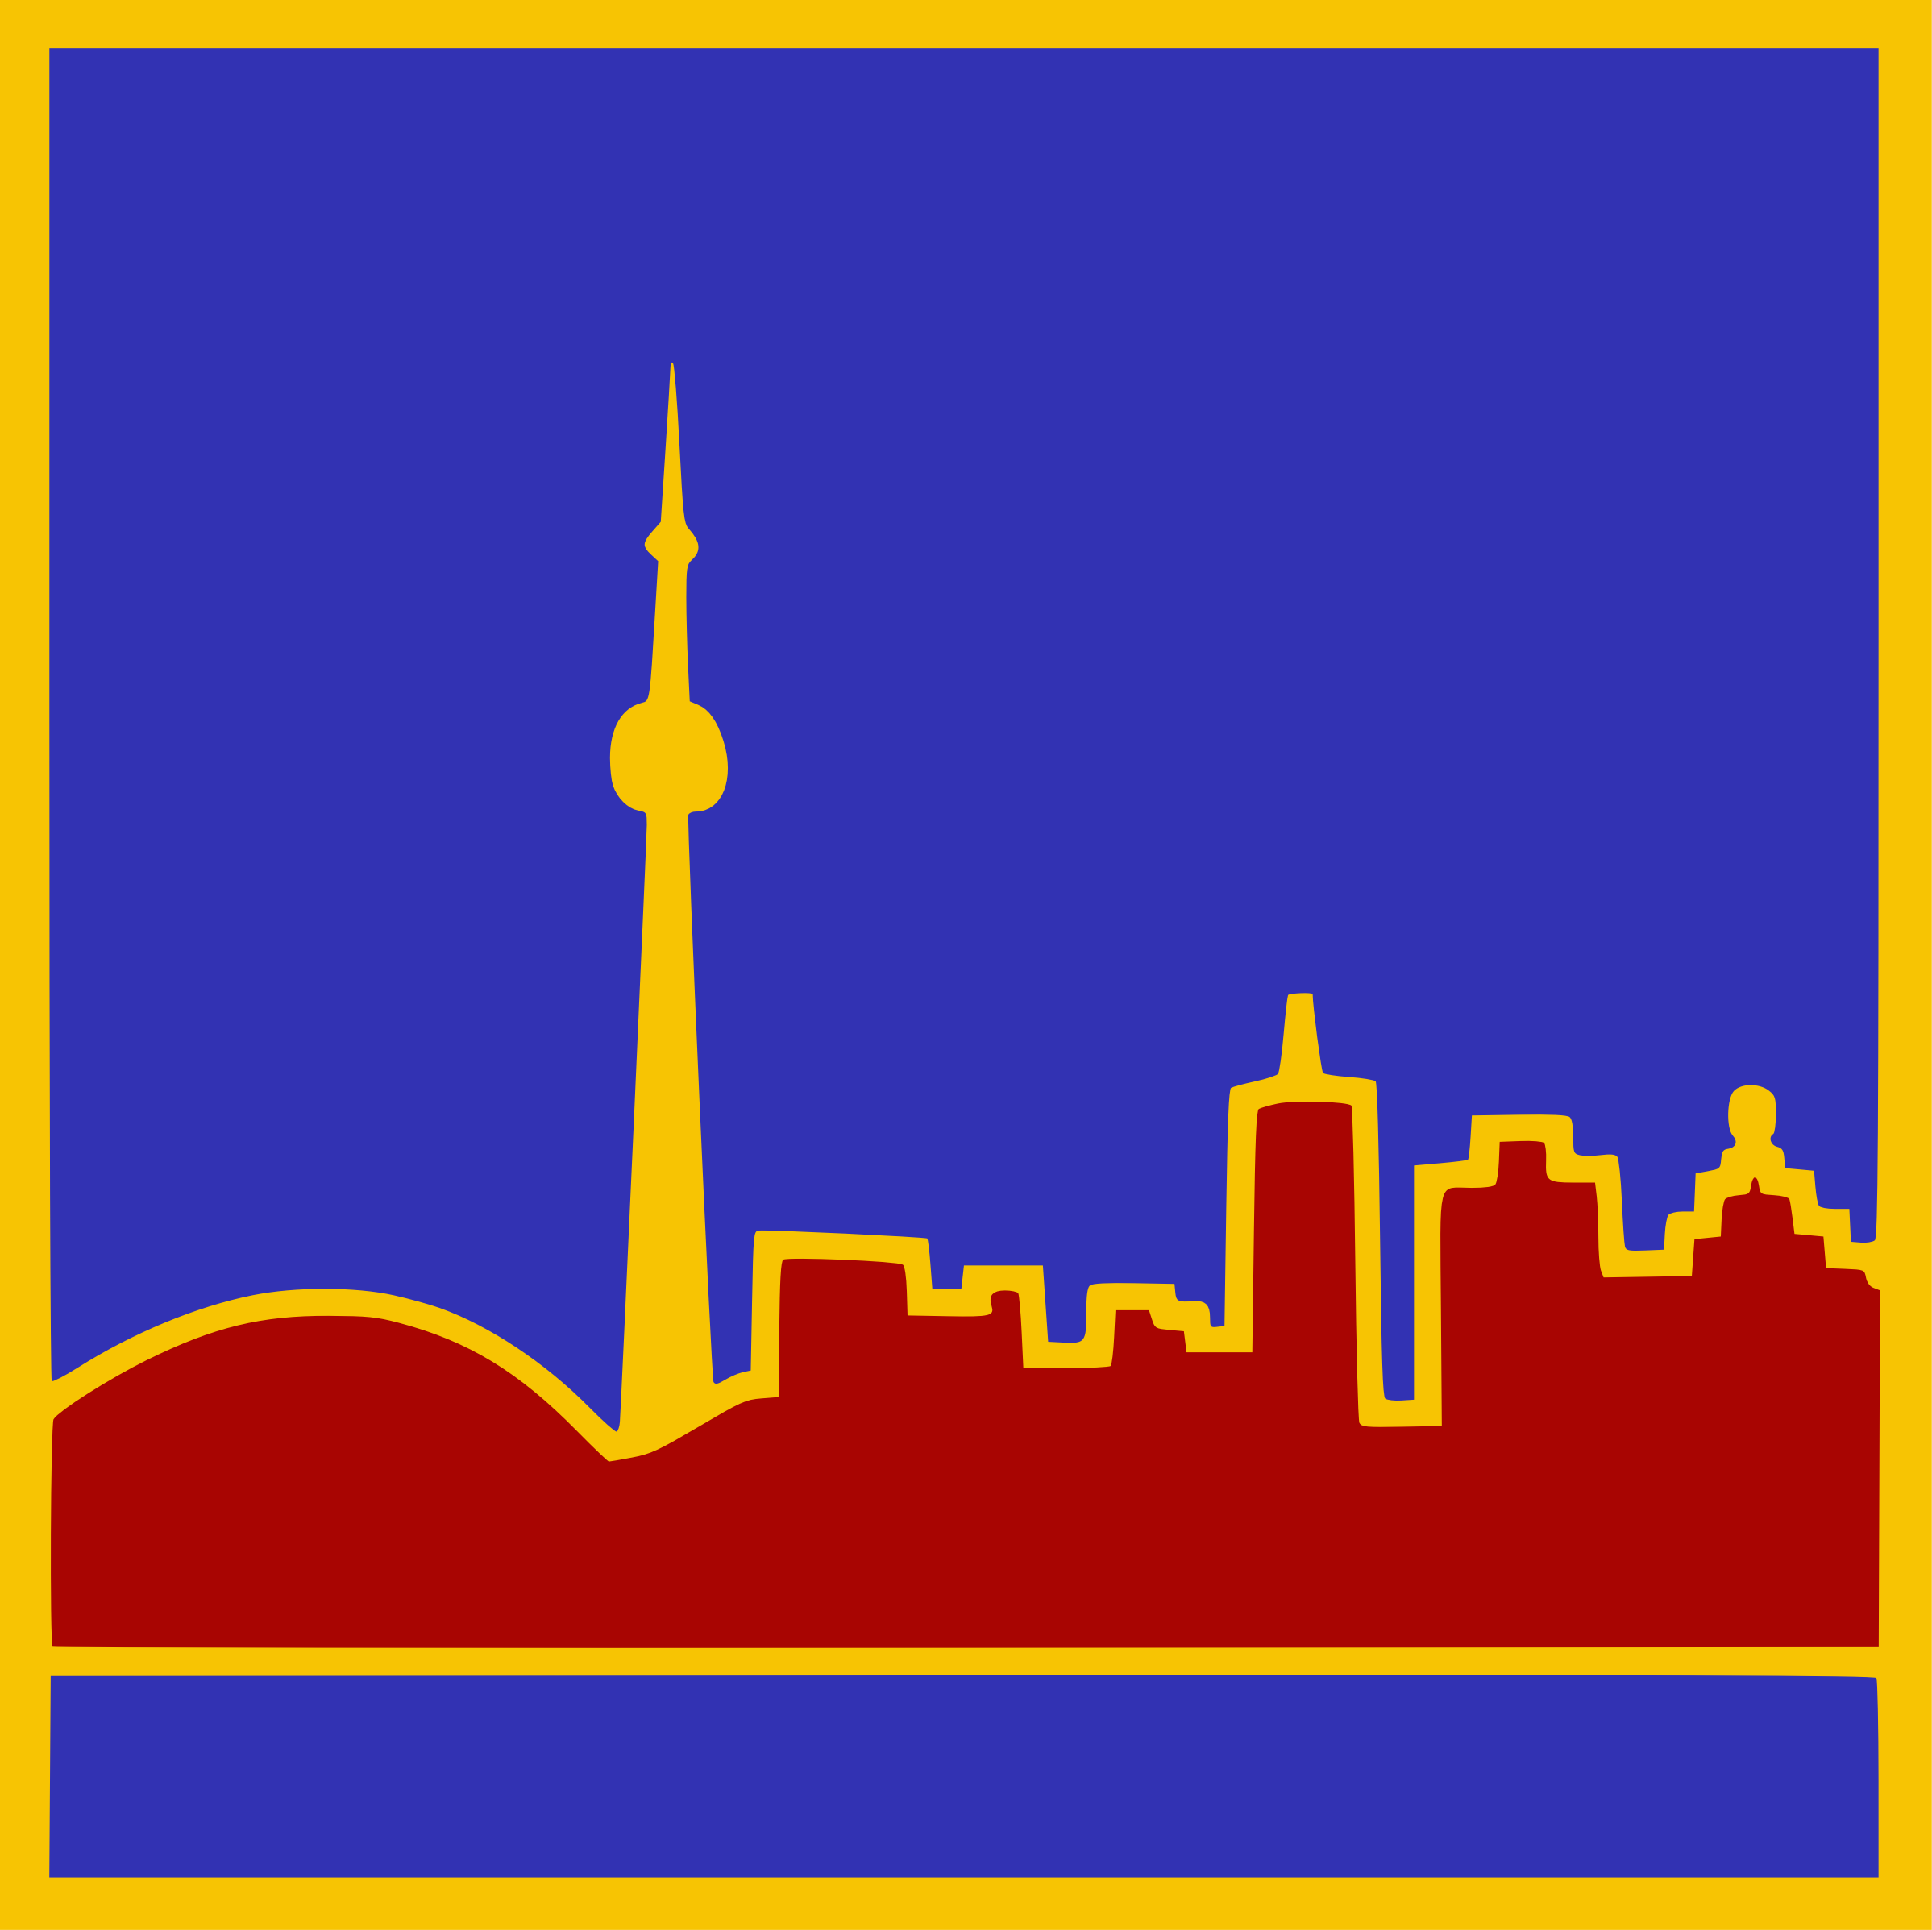 Stylized Toronto Skyline by kapn